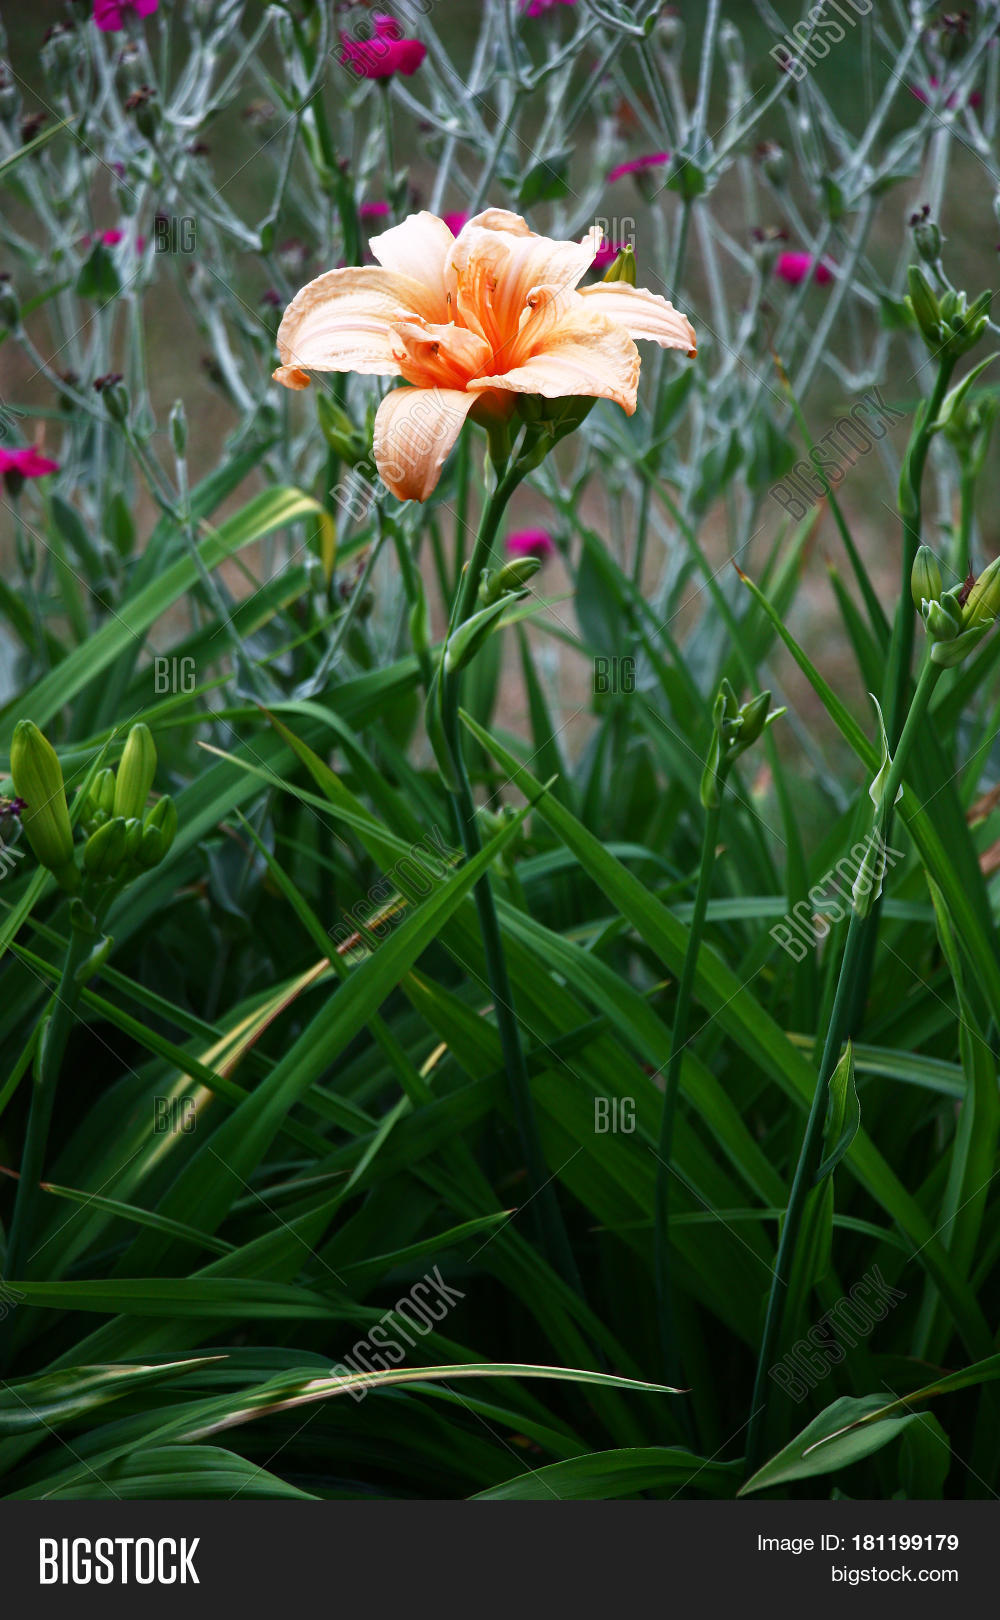 Flower Day Lily Salmon Image & Photo (Free Trial) | Bigstock